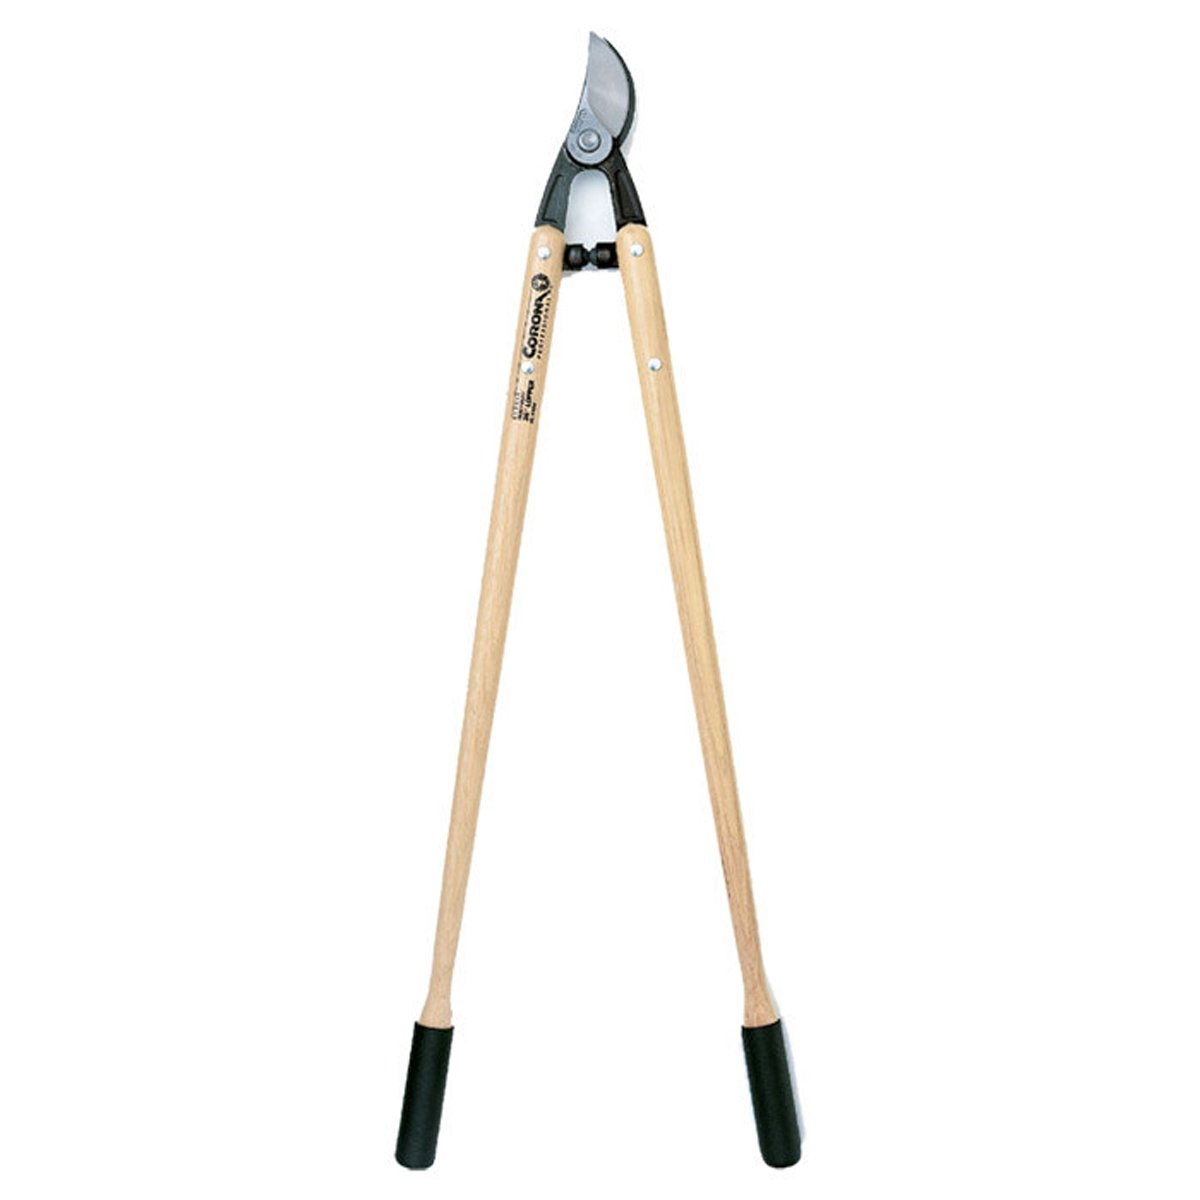 The Professional Heavy Duty Wood Handle of Bypass Pruner Loppers